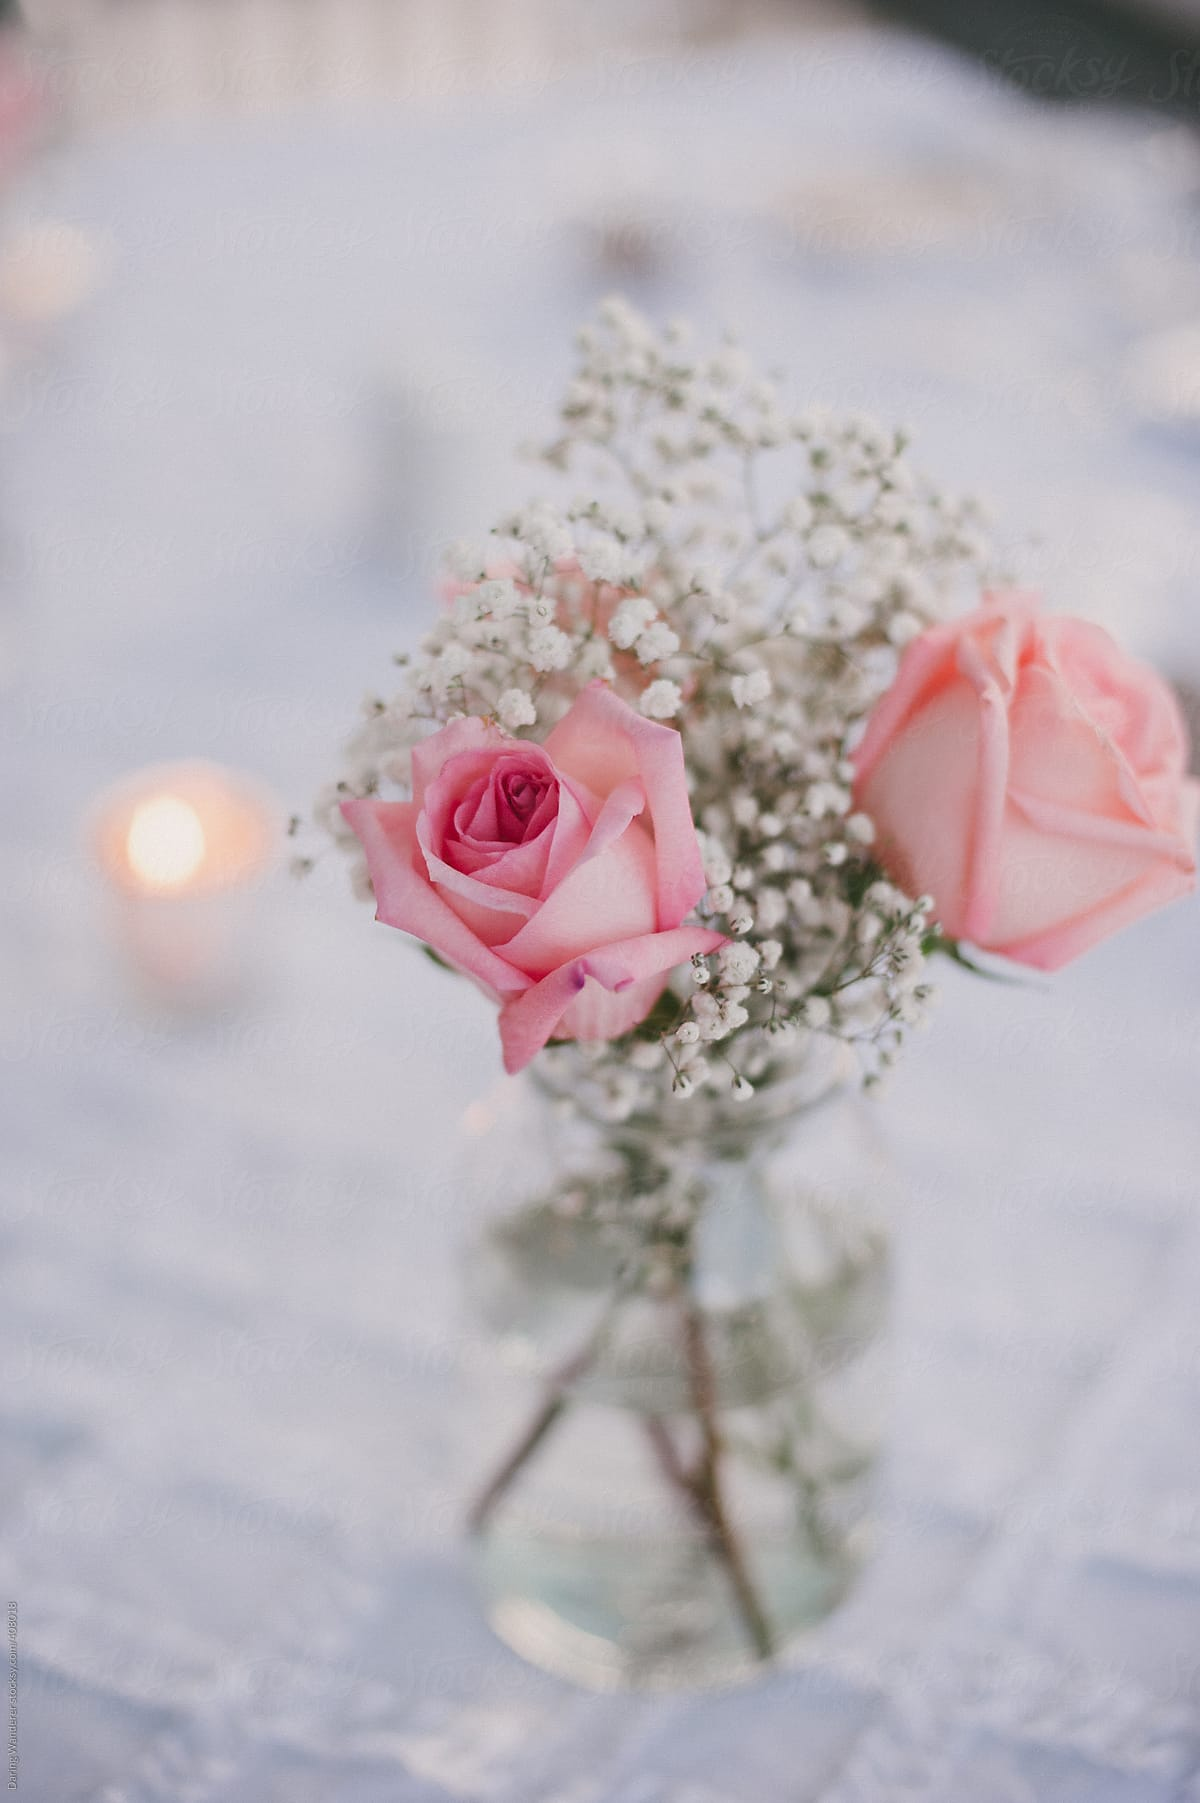 Simple babys breath and pink rose flower arrangement in mason jar simple babys breath and pink rose flower arrangement in mason jar by daring wanderer for stocksy izmirmasajfo